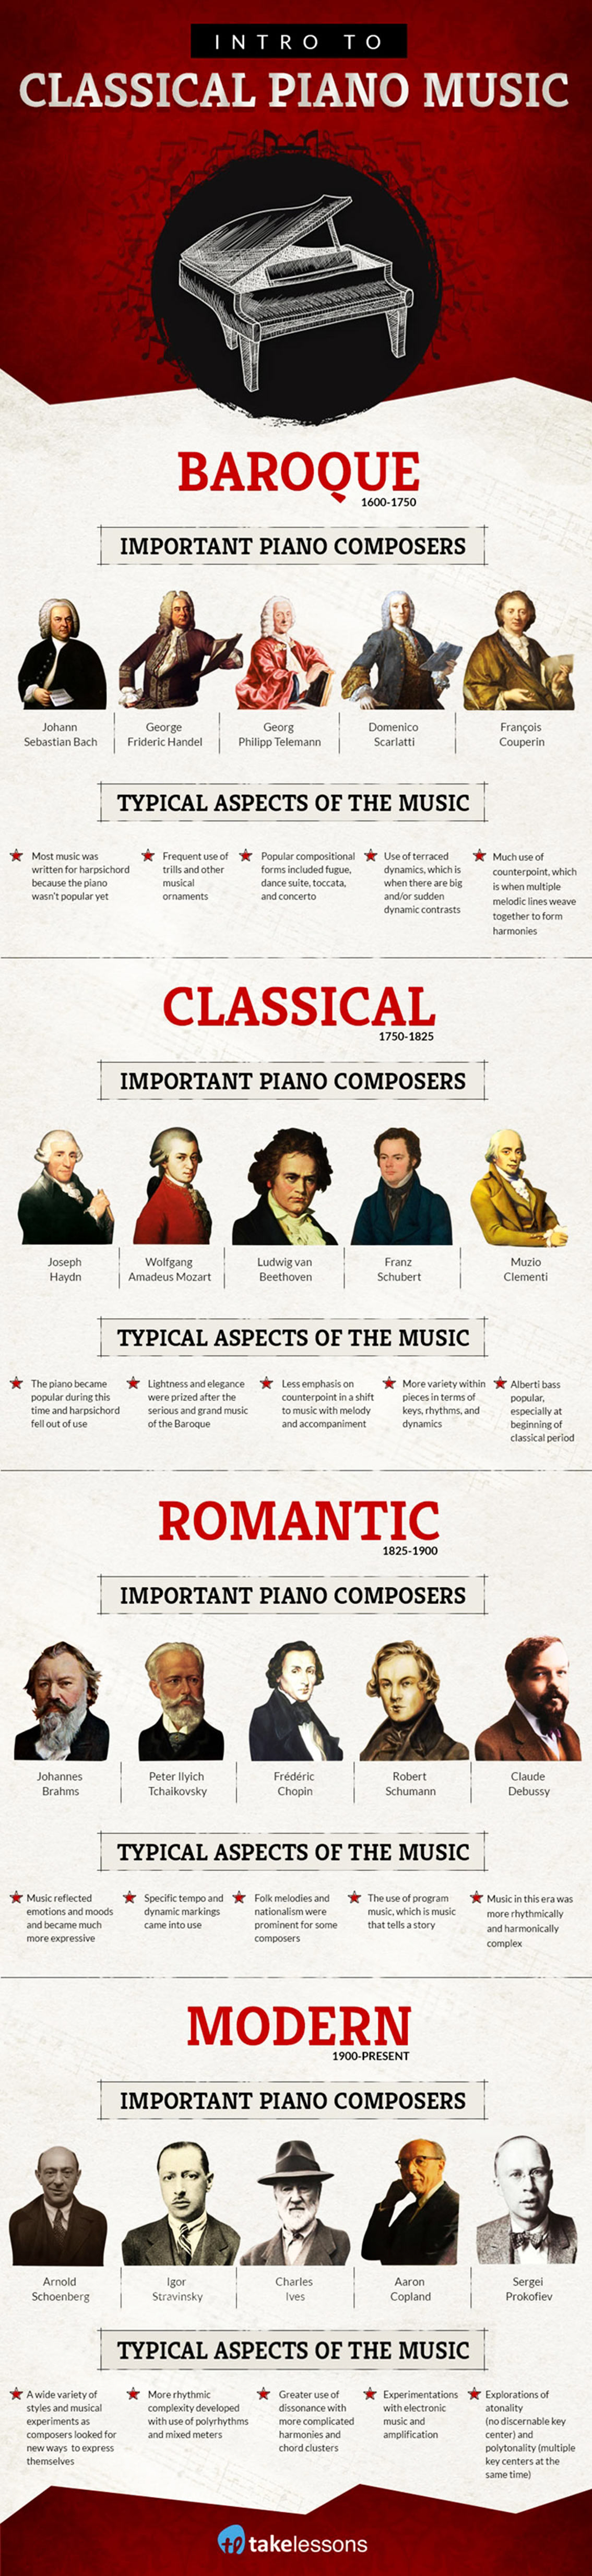 Important Classical Music Composers of All Time Infographic